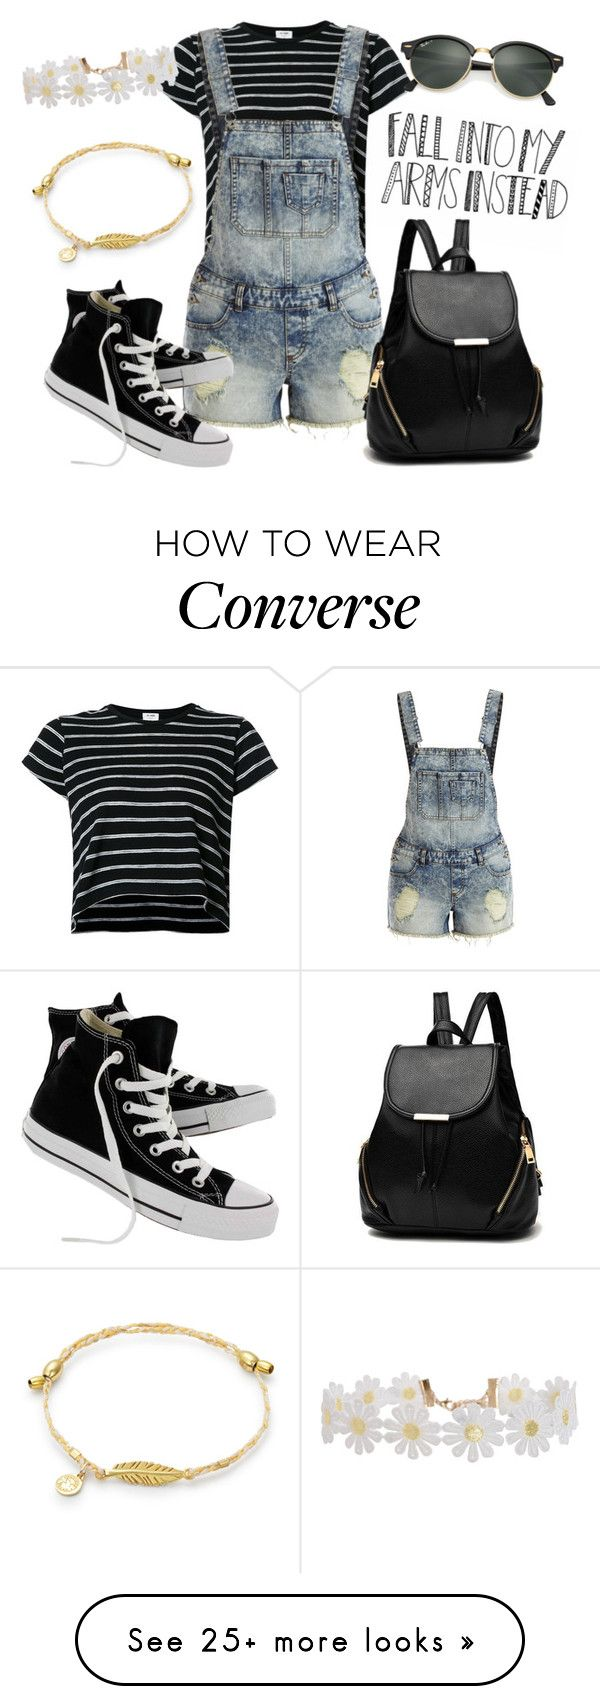 """Outfit #204"" by catytomlinson95 on Polyvore featuring RE/DONE, VILA, Converse, Humble Chic and Ray-Ban"